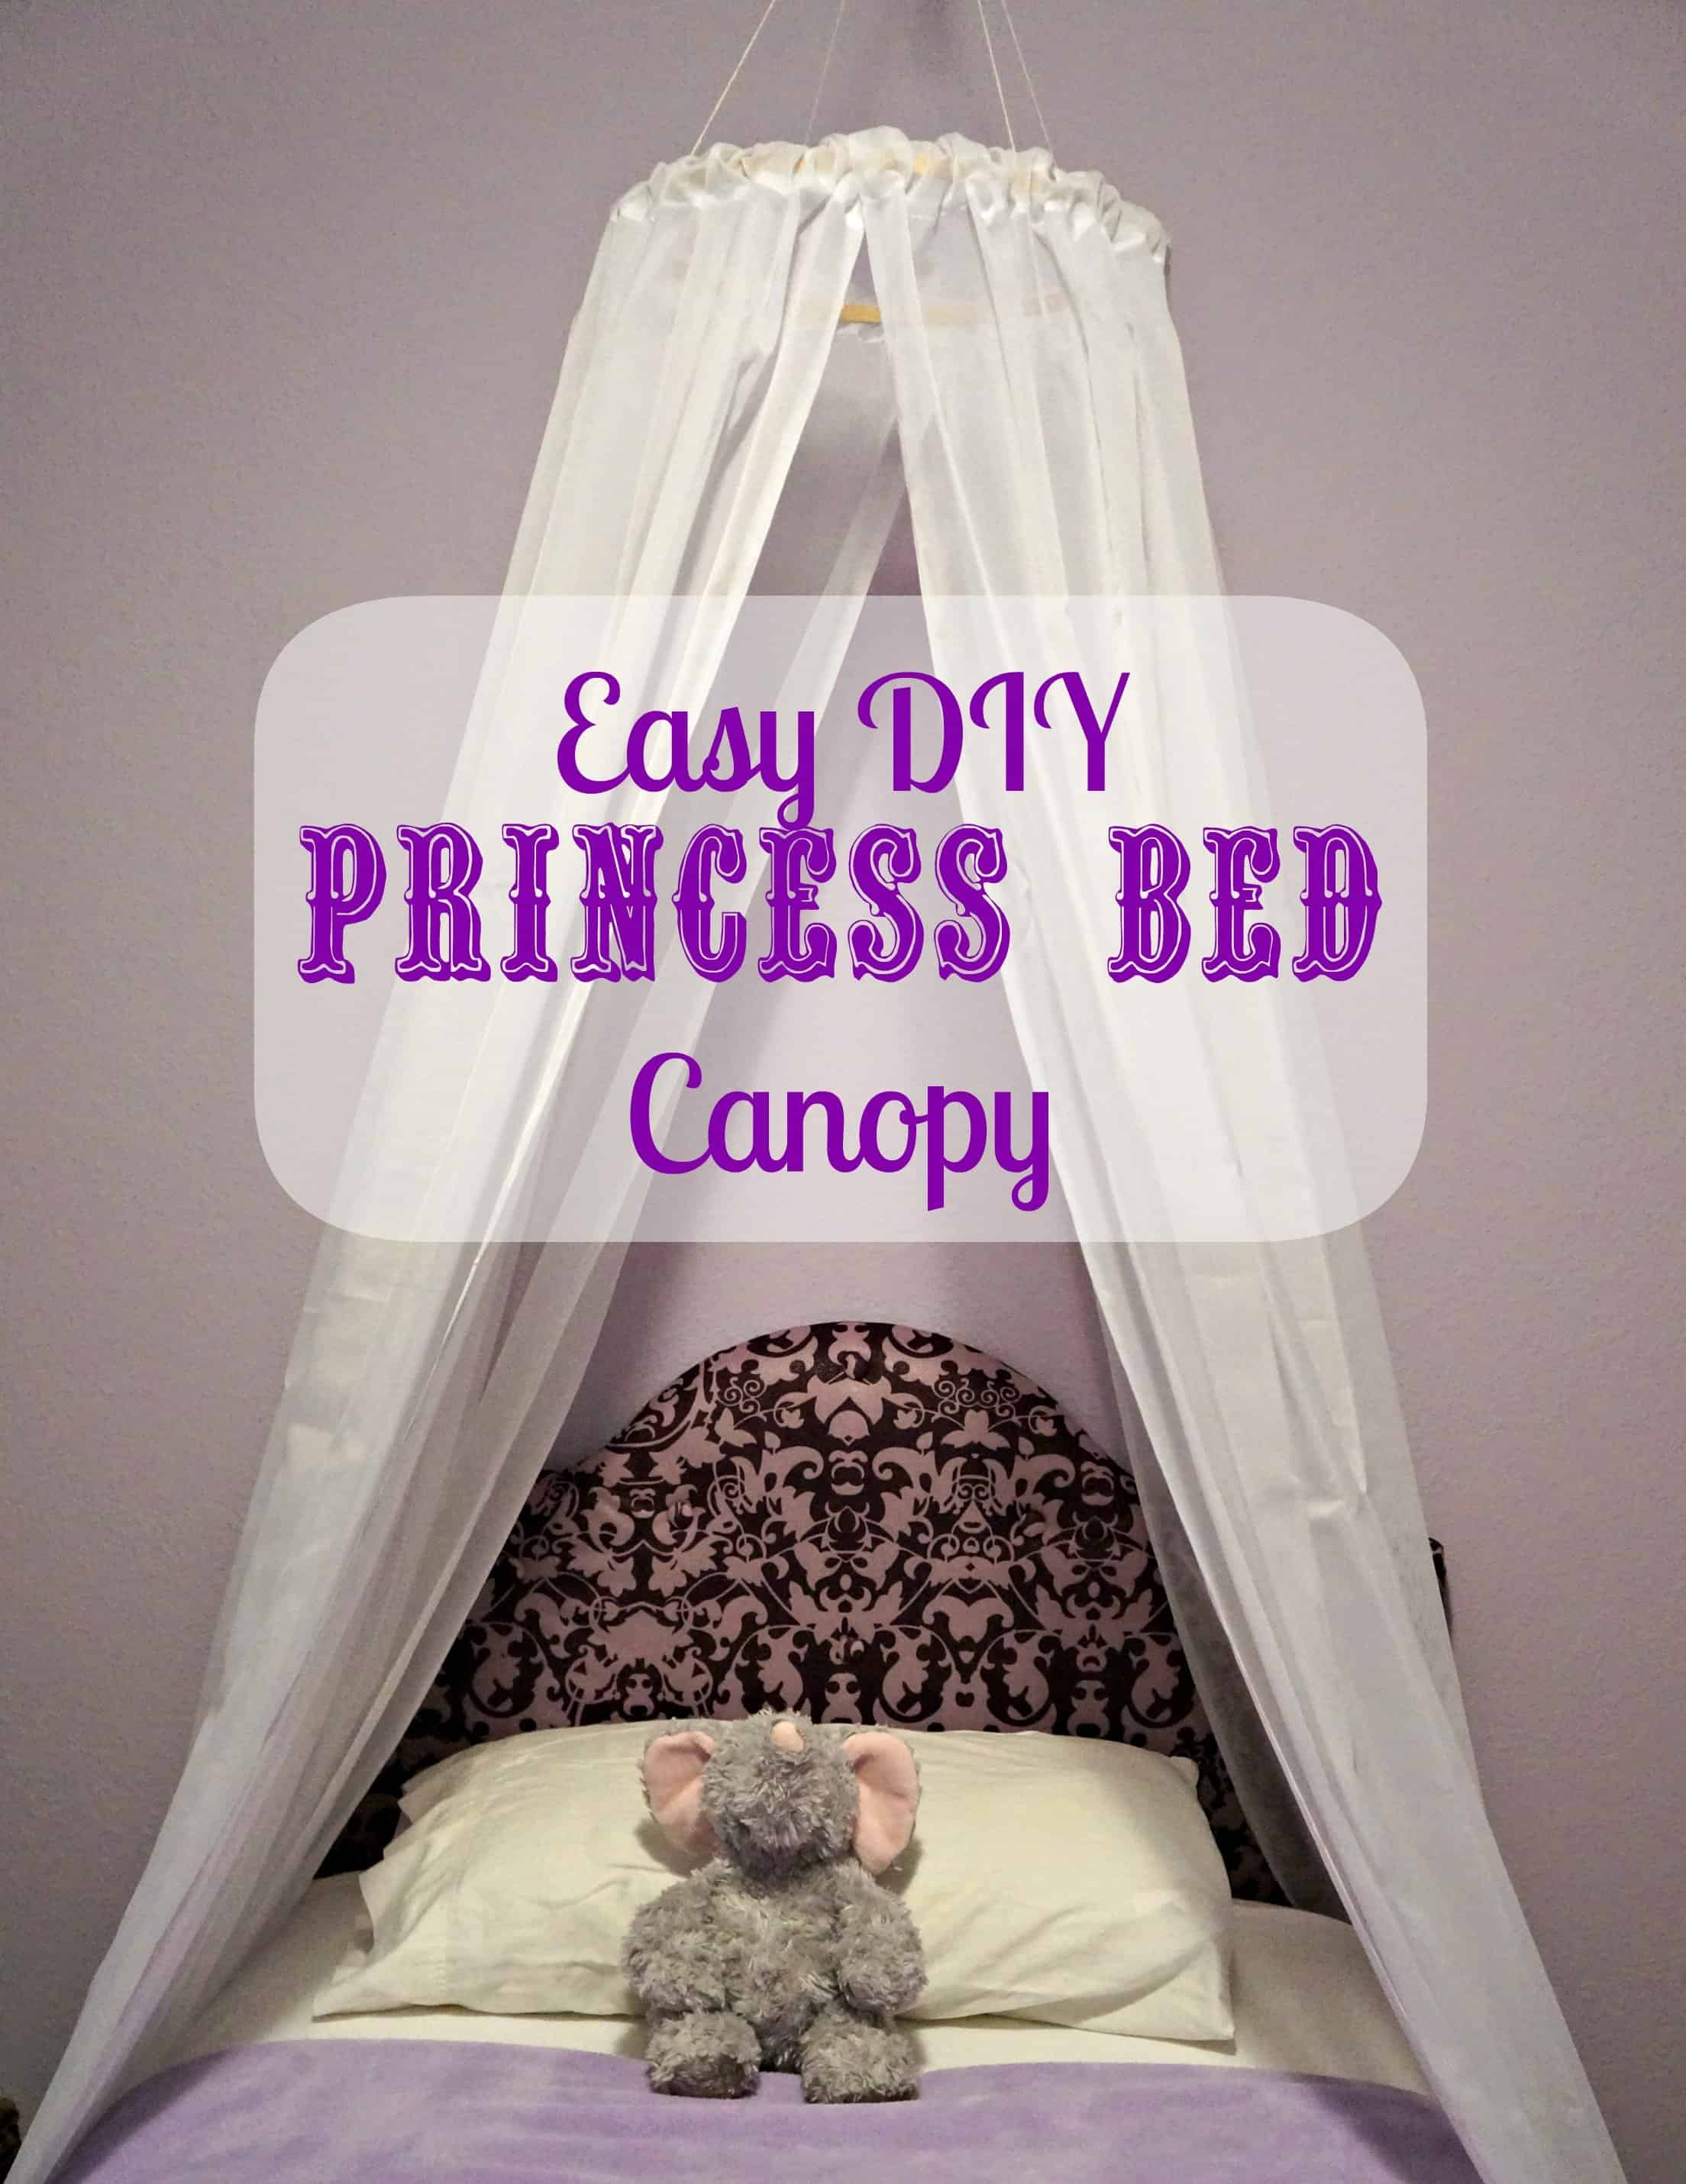 Easy DIY princess bed canopy. No sew comes together in under 10 minutes. : canopy for toddler princess bed - memphite.com